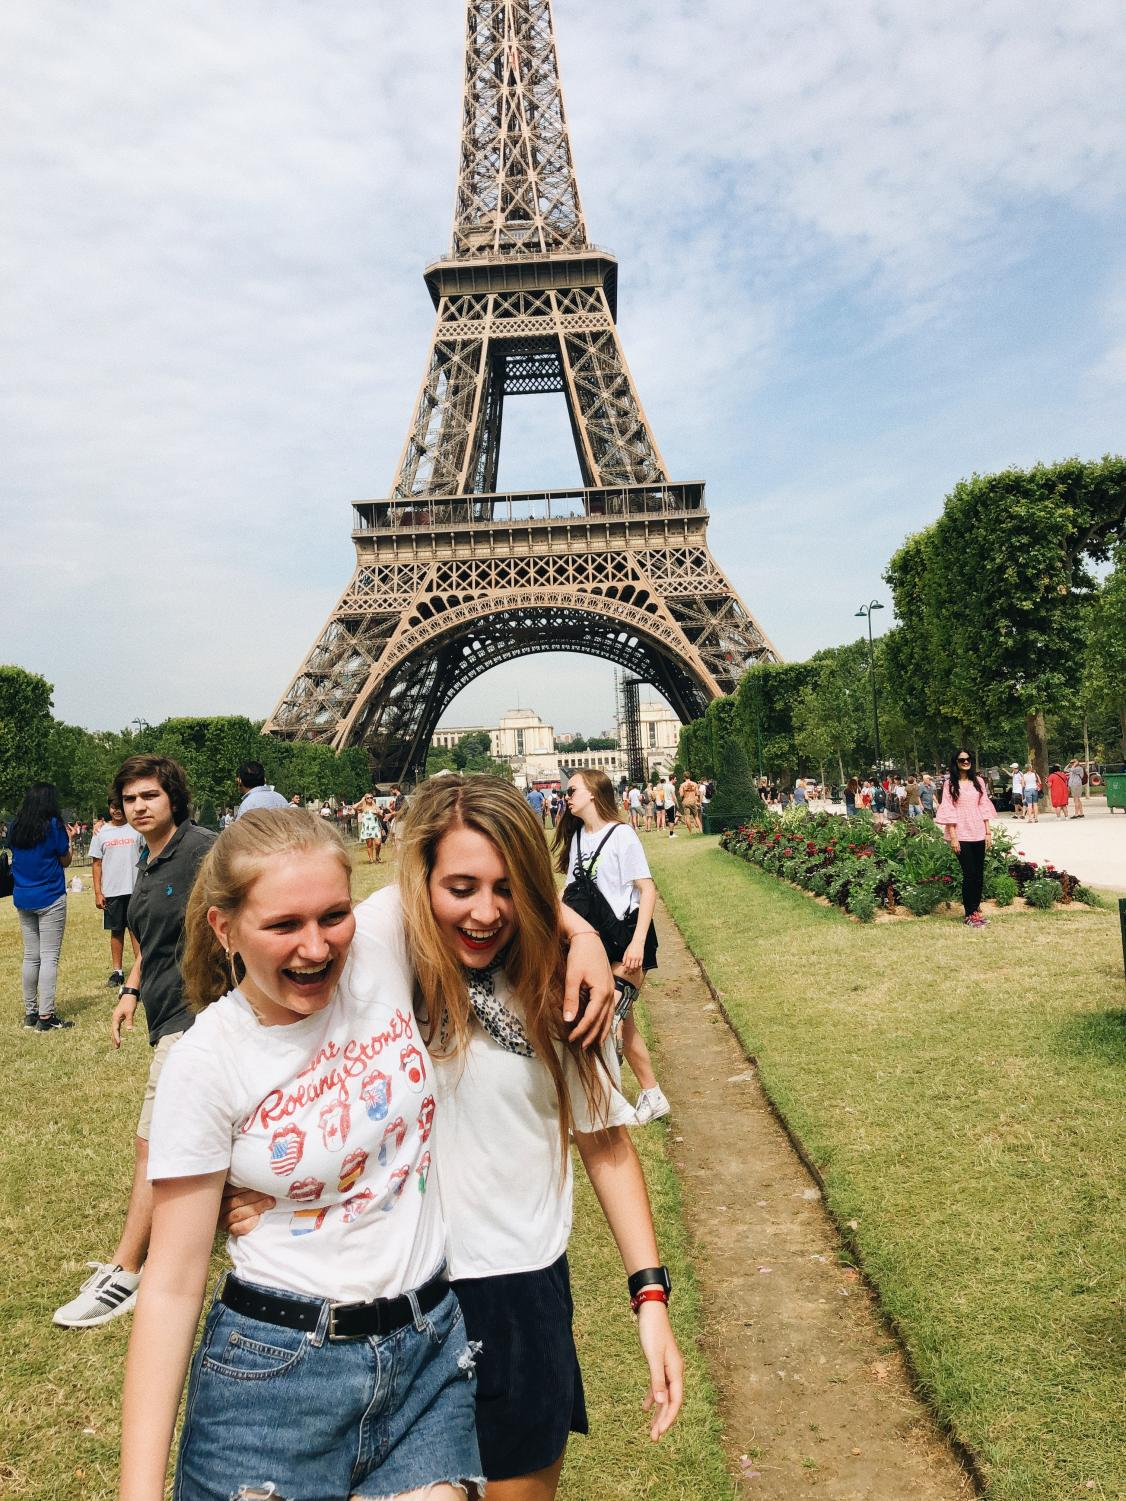 Junior Brooke Boucher (left) and senior Ava Kreitner (right) enjoy their time in Paris in front of the Eiffel Tower.